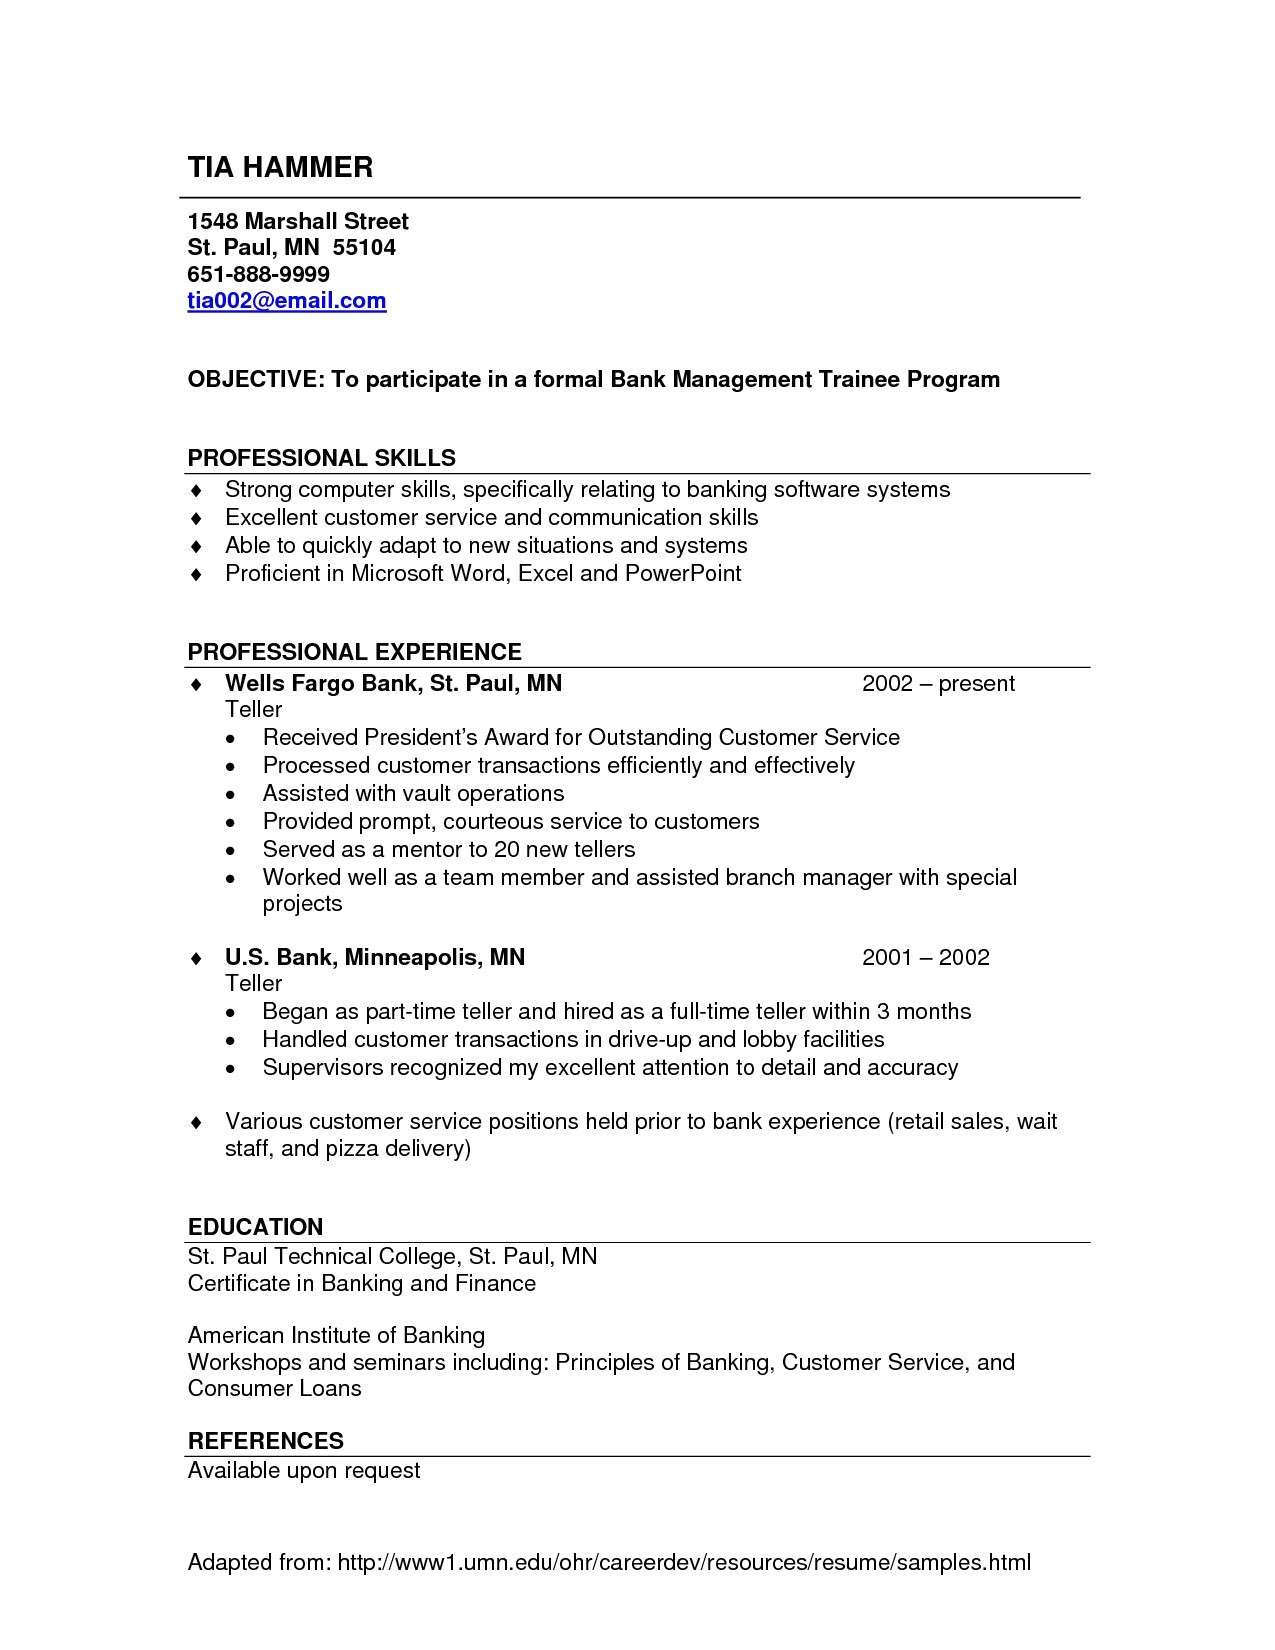 Resume with References - Apa Resume Template New Examples A Resume Fresh Resume Examples 0d